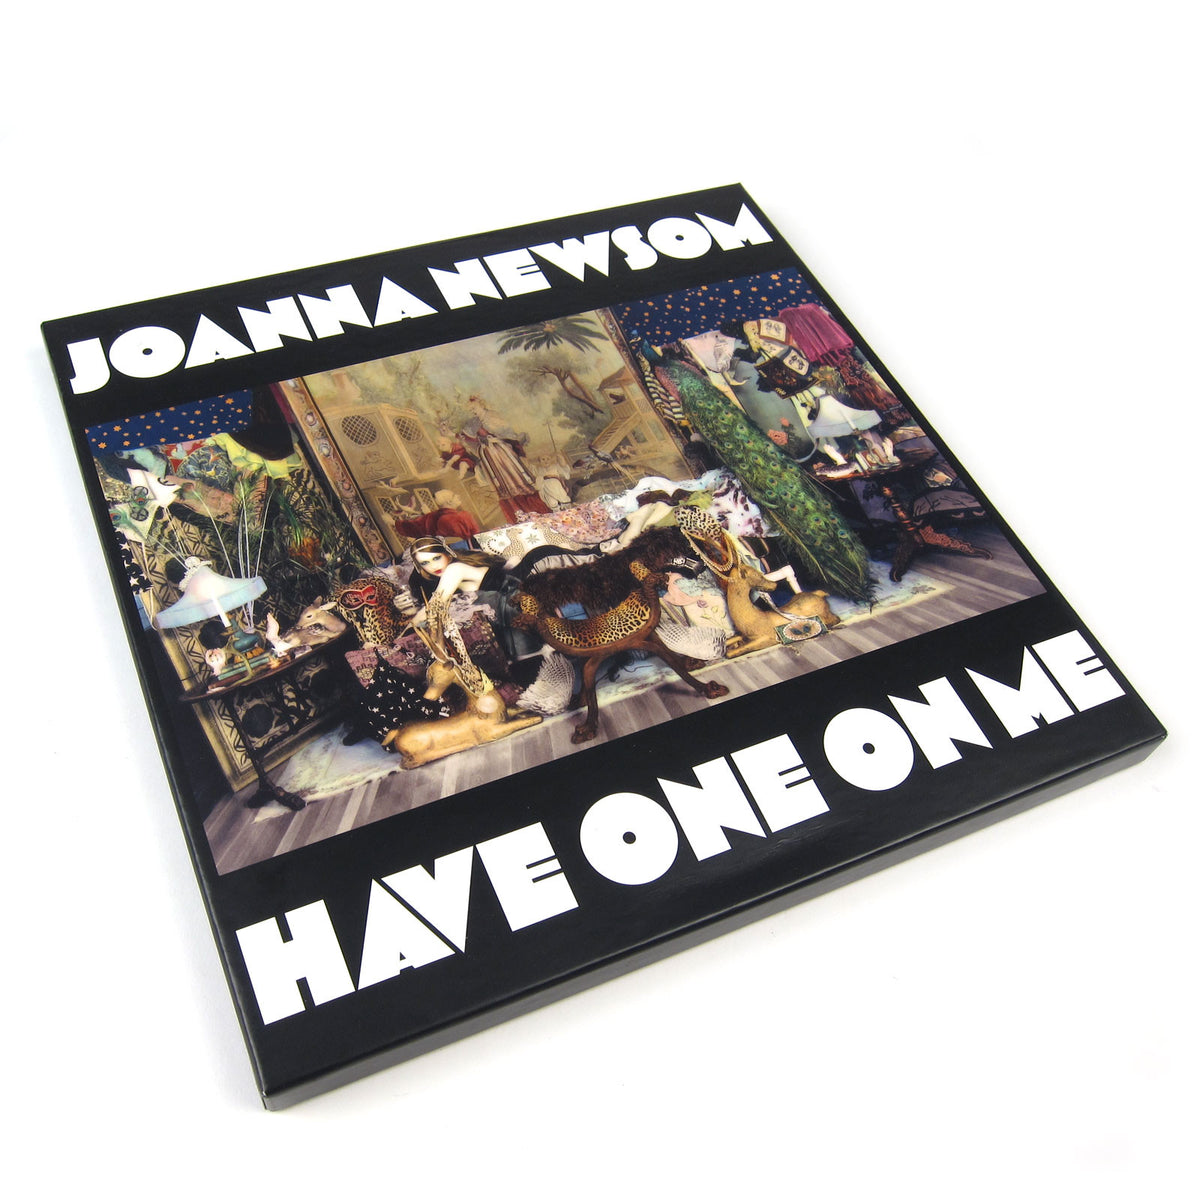 Joanna Newsom: Have One On Me Vinyl 3LP Boxset